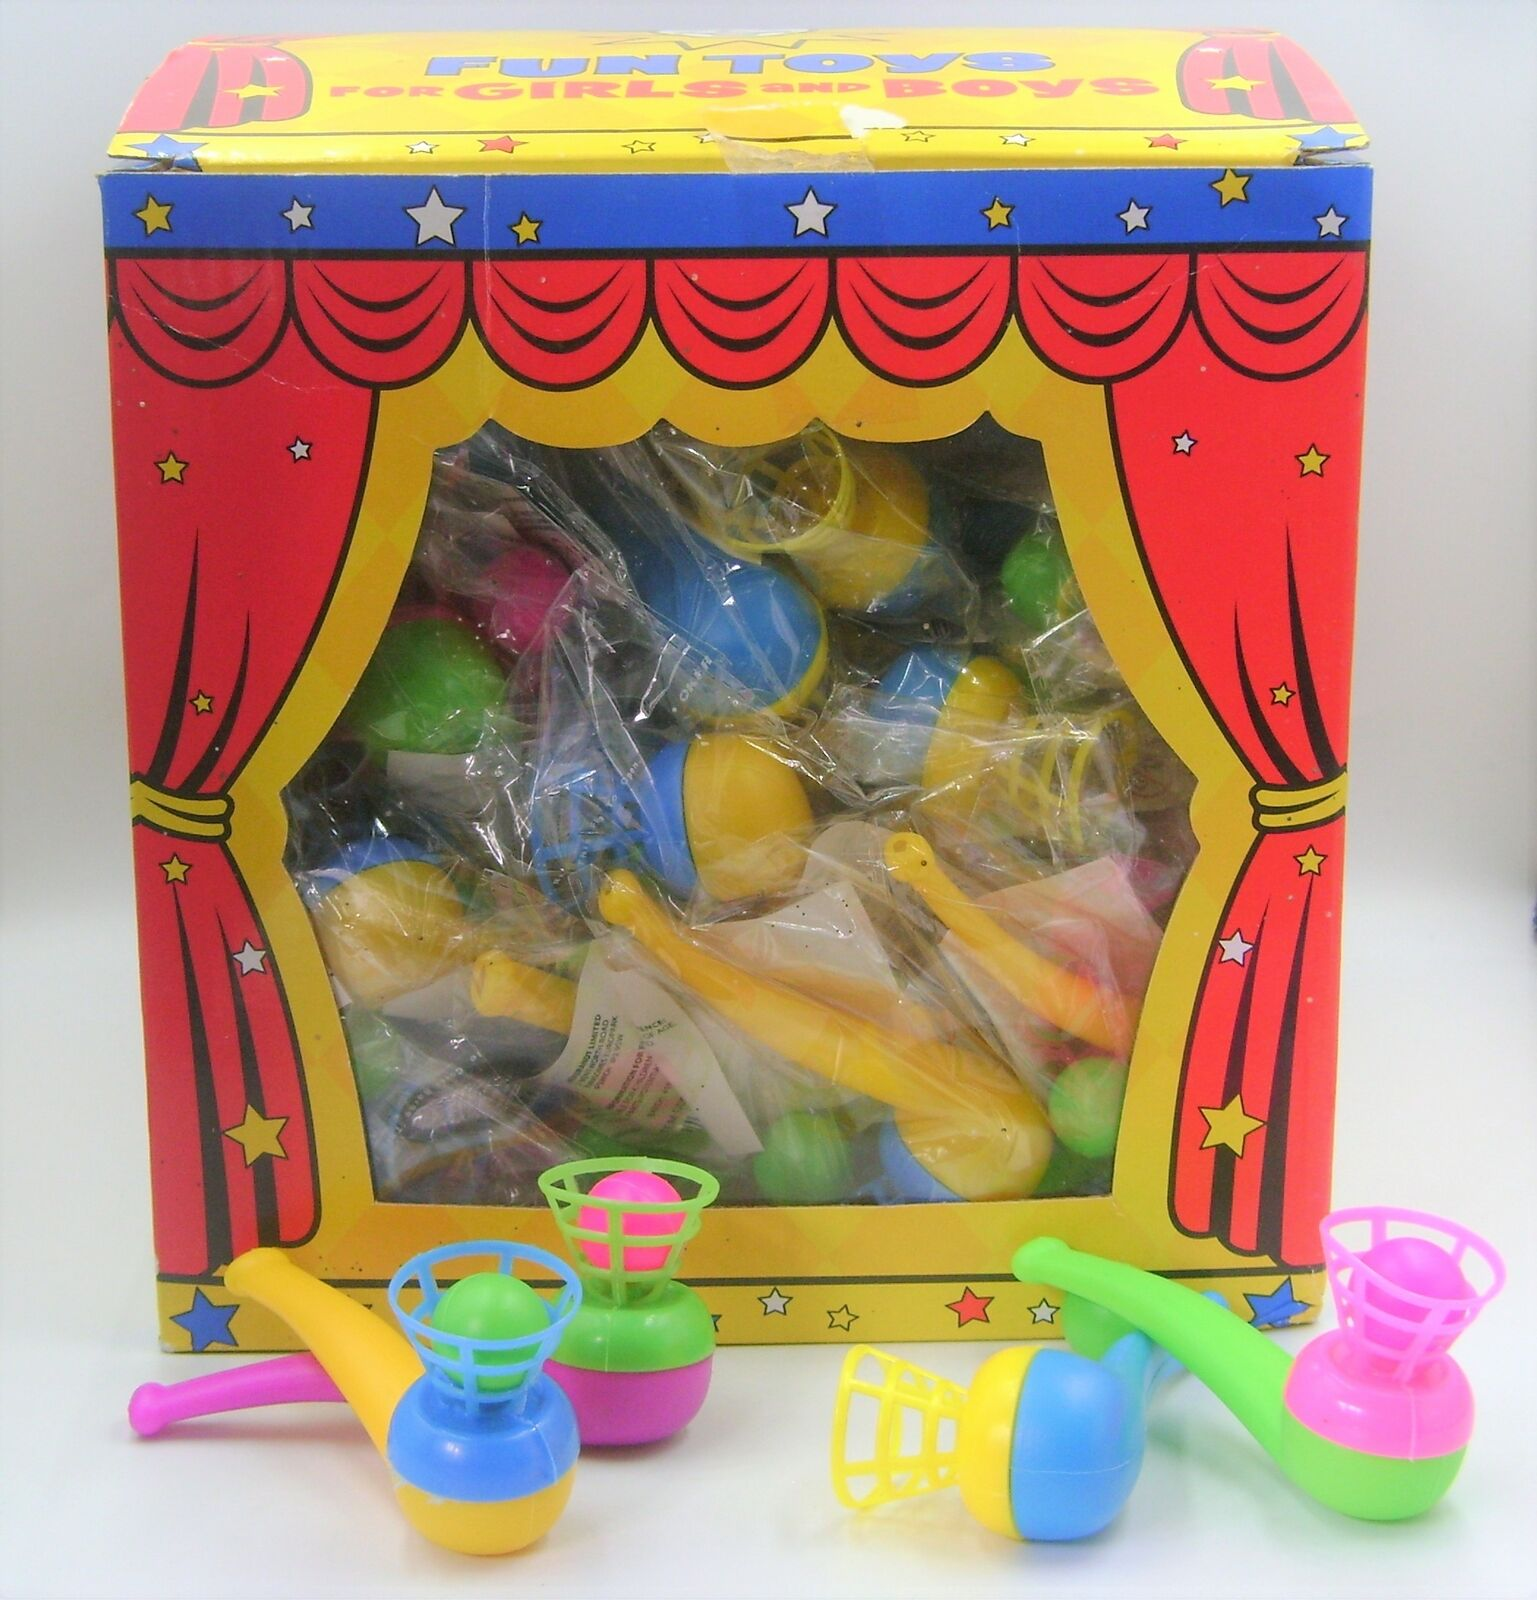 NEW BULK BOX OF 72 BLOW WHISTLE TOYS HB LOADS OF FUN  -)